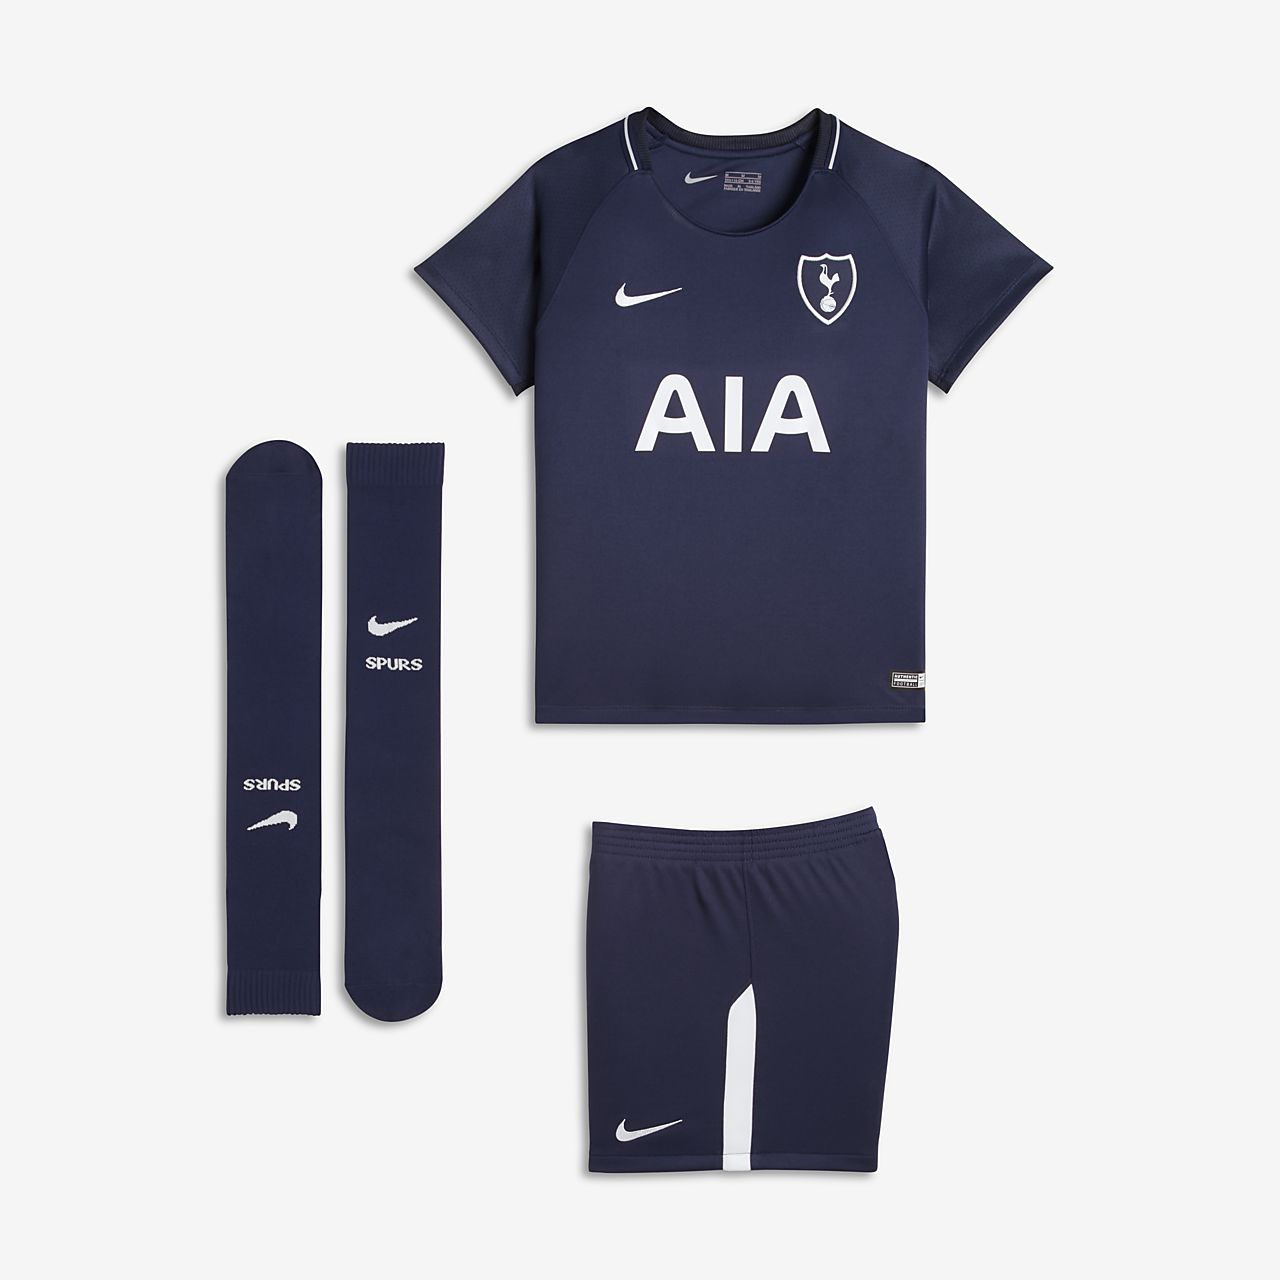 c04f9a5da 2017 18 Tottenham Hotspur Stadium Away Younger Kids  Football Kit ...